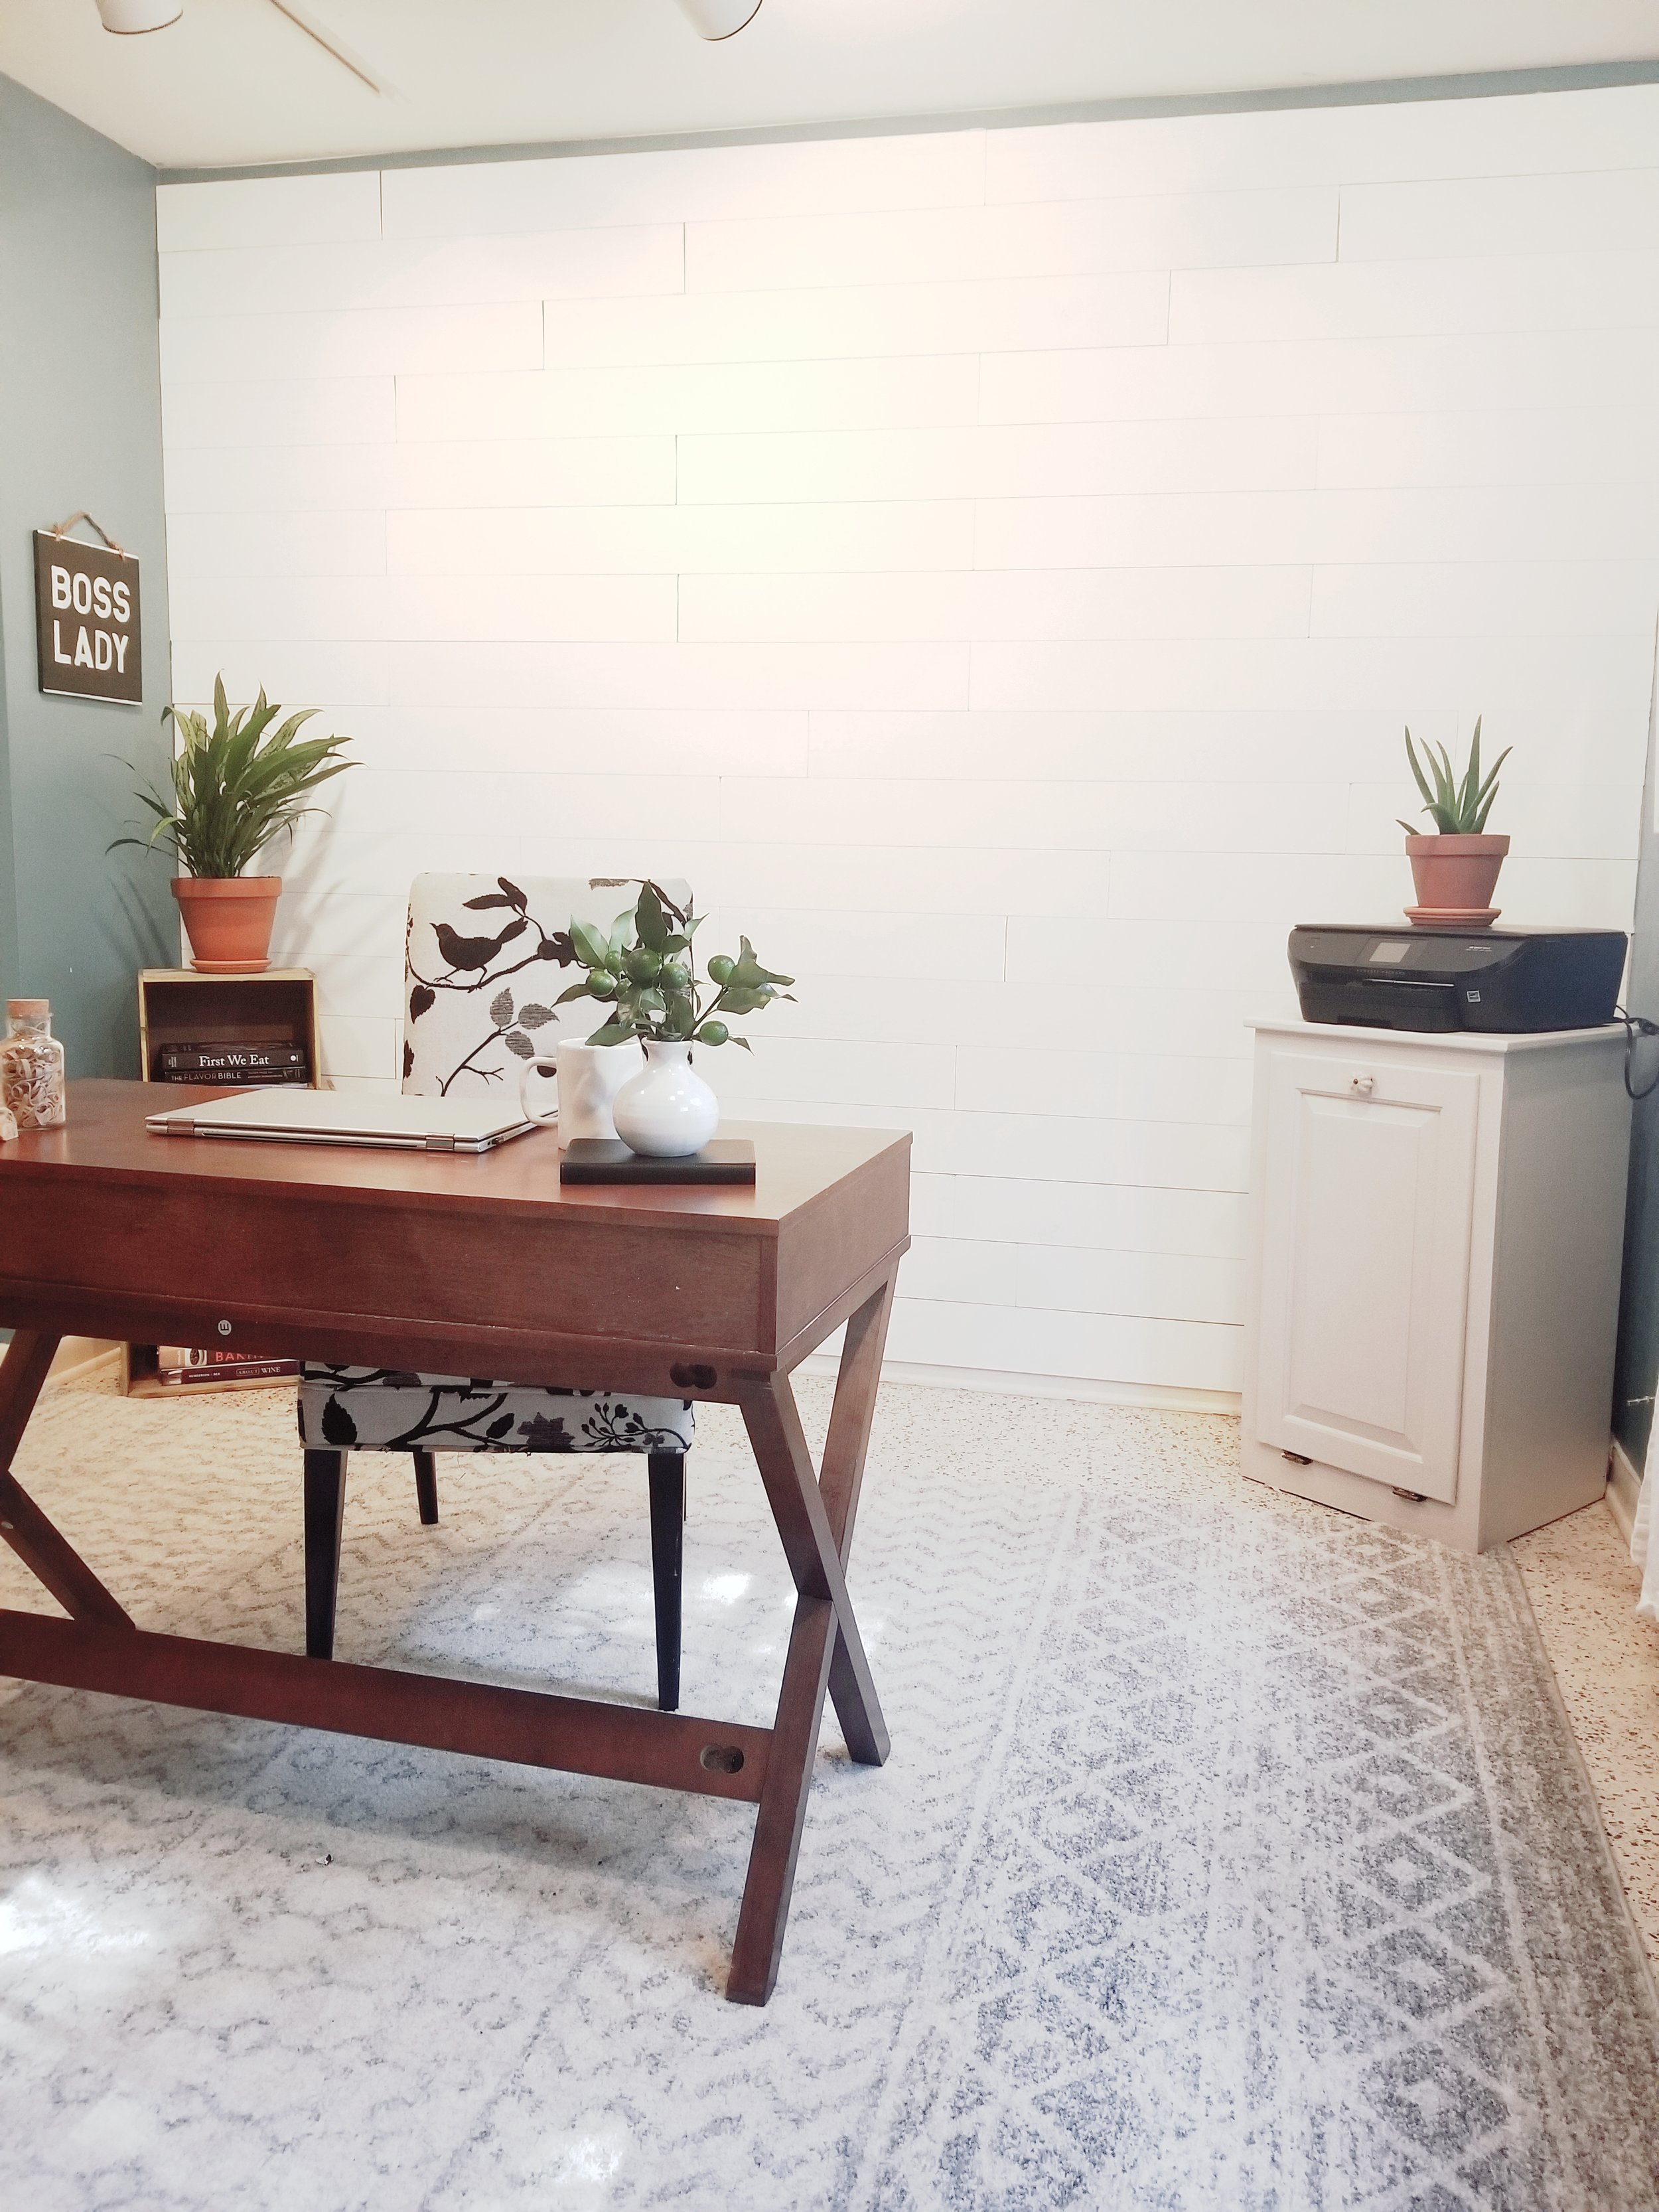 After wallplanks accent shiplap wall. Home office, boss lady office.